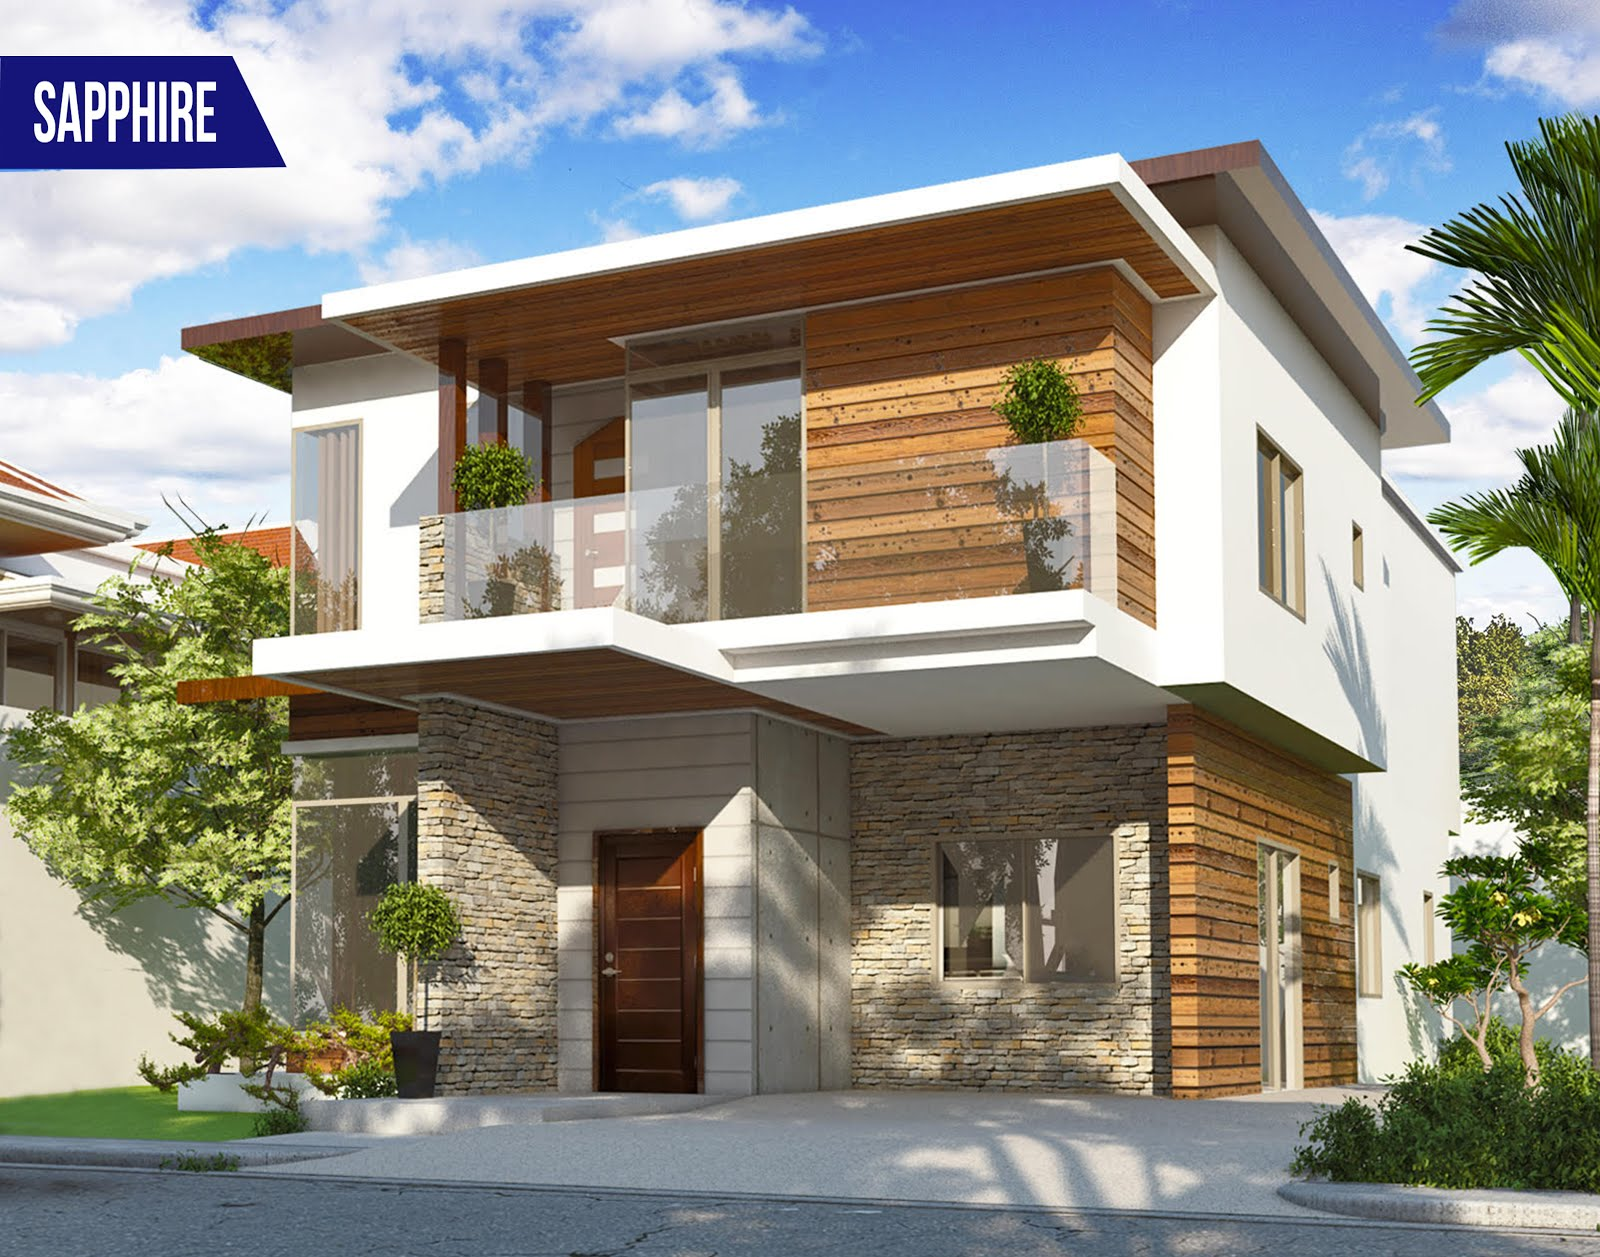 A Smart Philippine House Builder The Basics Of Latest House Design